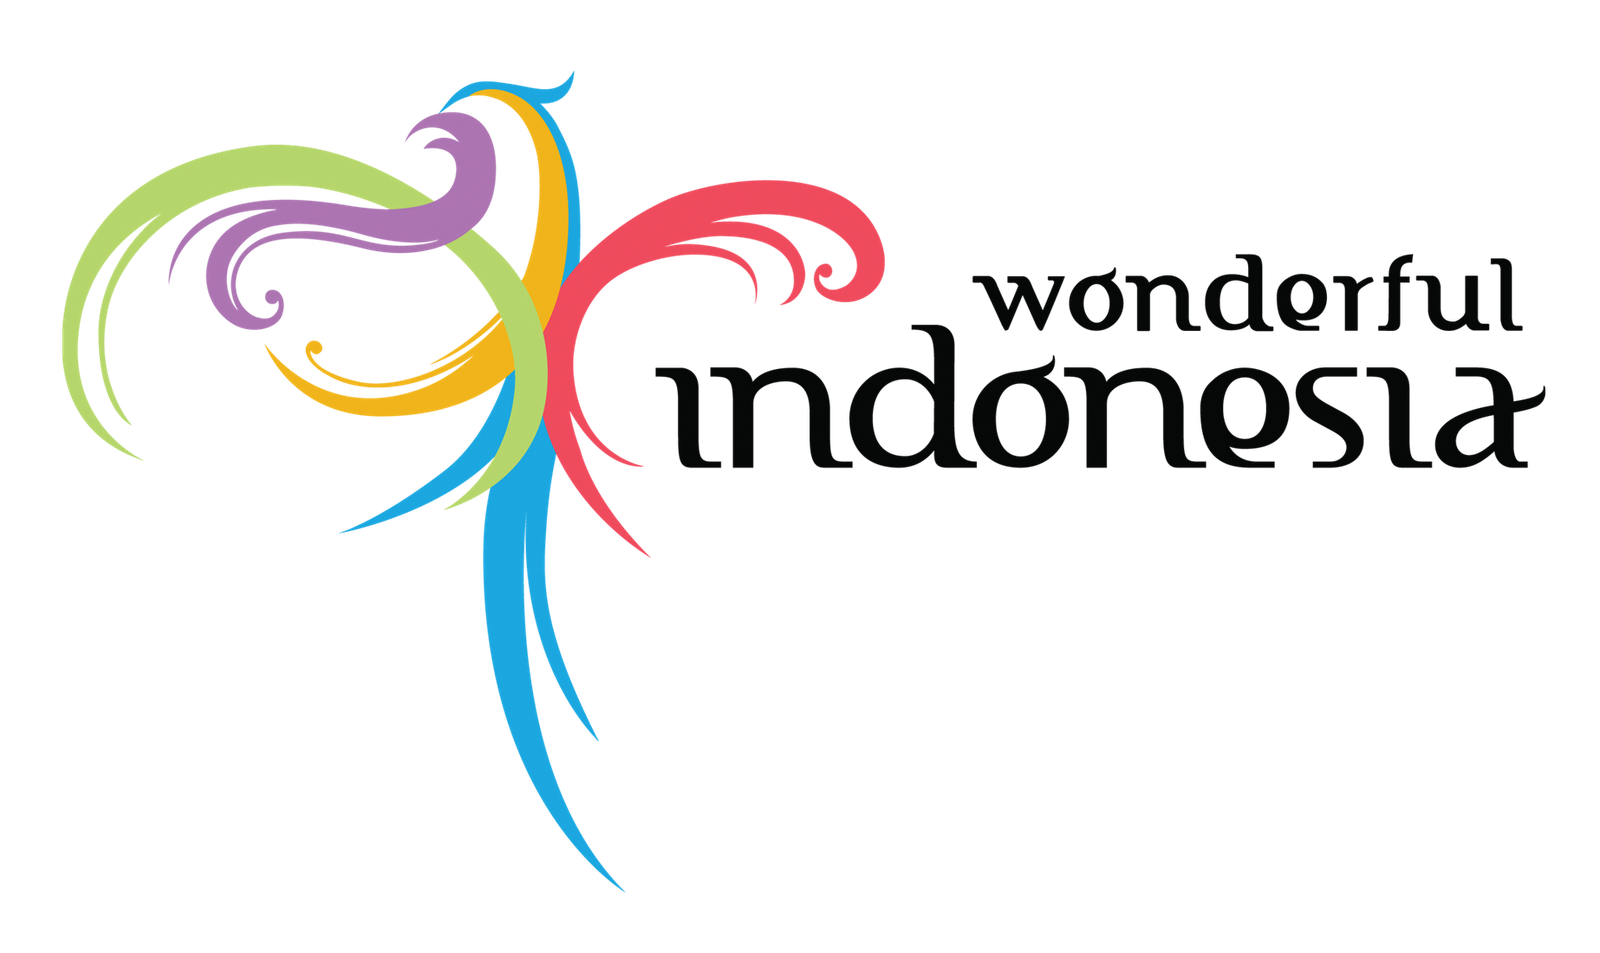 Wonderful indonesia logo black raden roro3 for Wonderful black